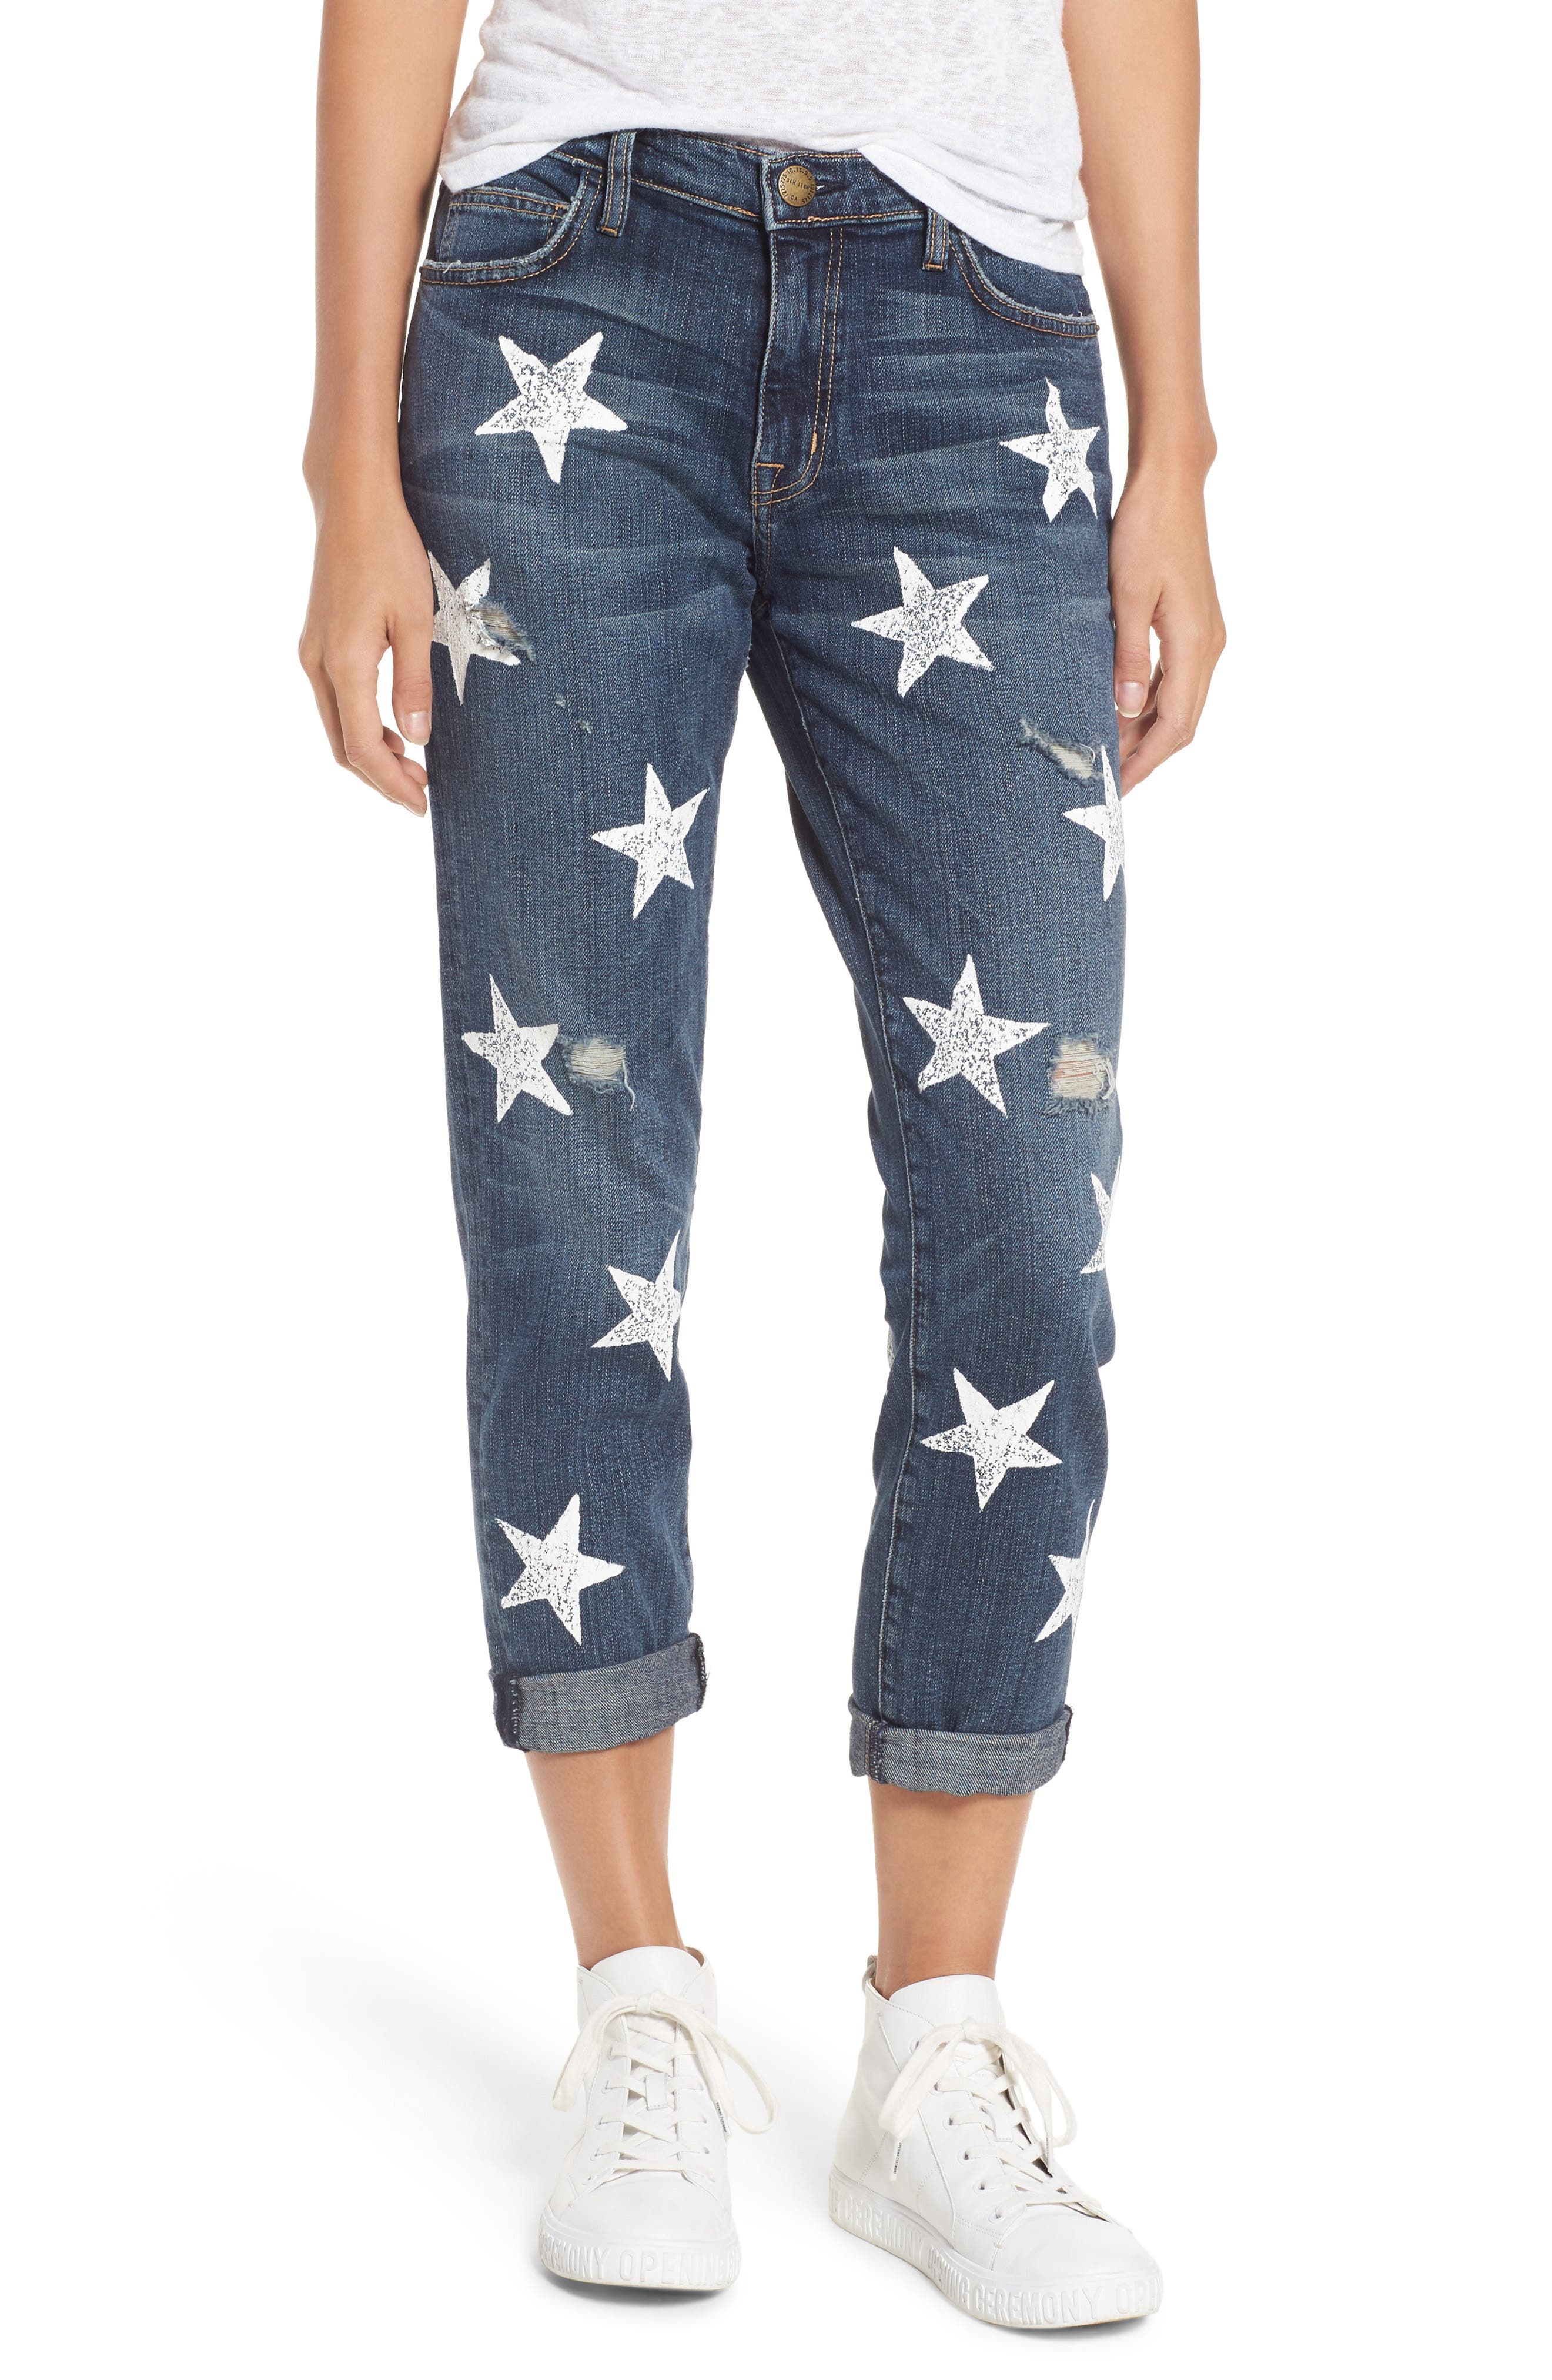 Current/Elliott The Fling High Waist Boyfriend Jeans (Loved Destroy with White Stars)